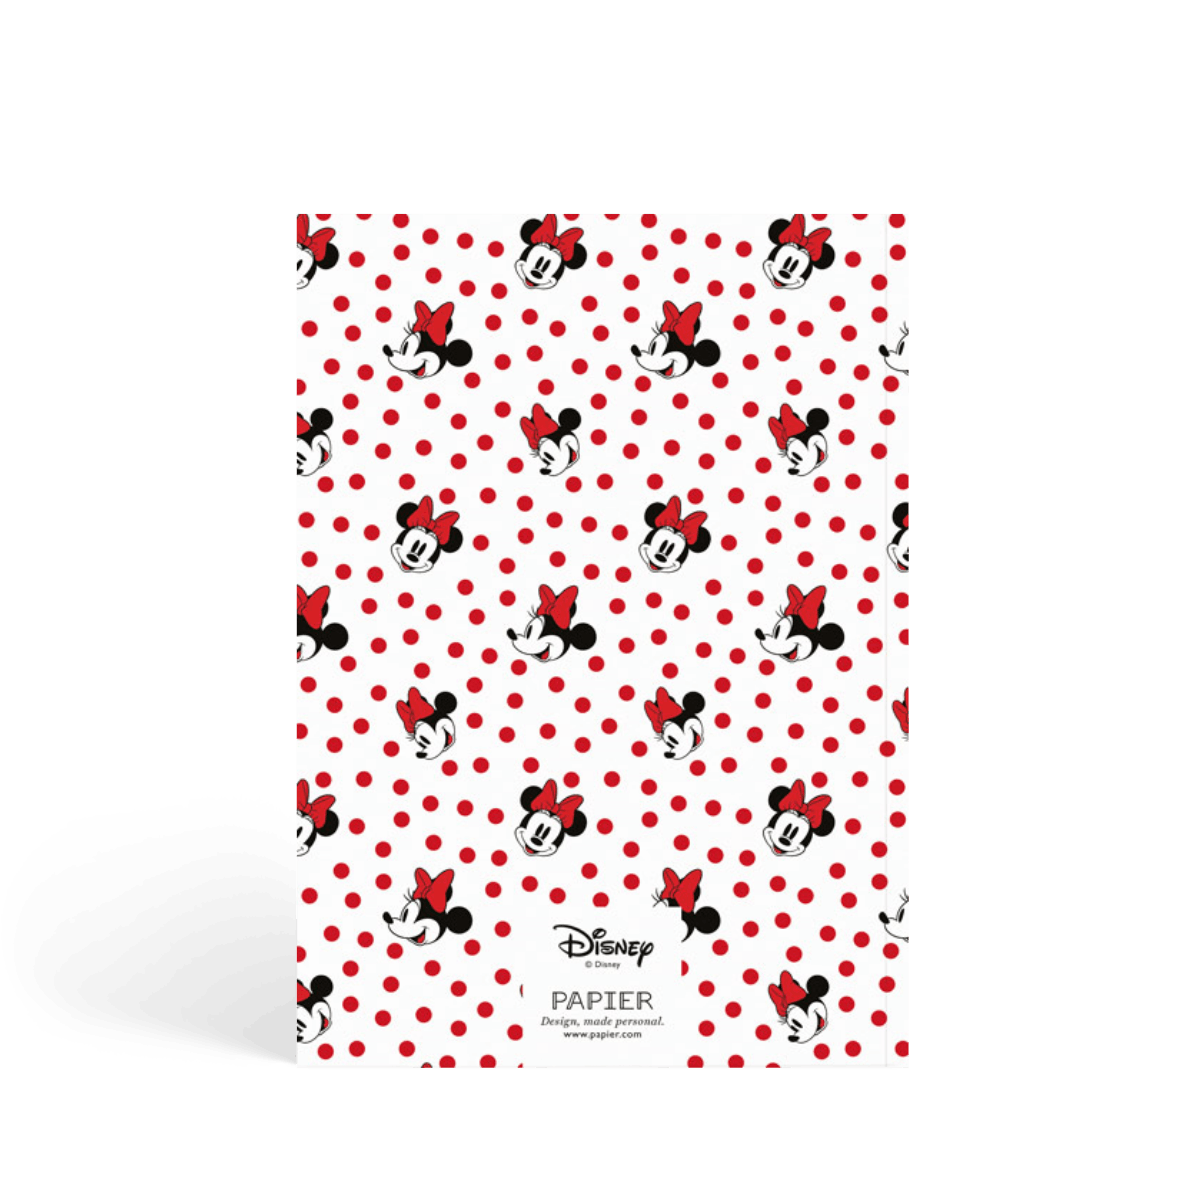 Https%3a%2f%2fwww.papier.com%2fproduct image%2f56020%2f5%2fminnie mouse 13459 rueckseite 1542369381.png?ixlib=rb 1.1